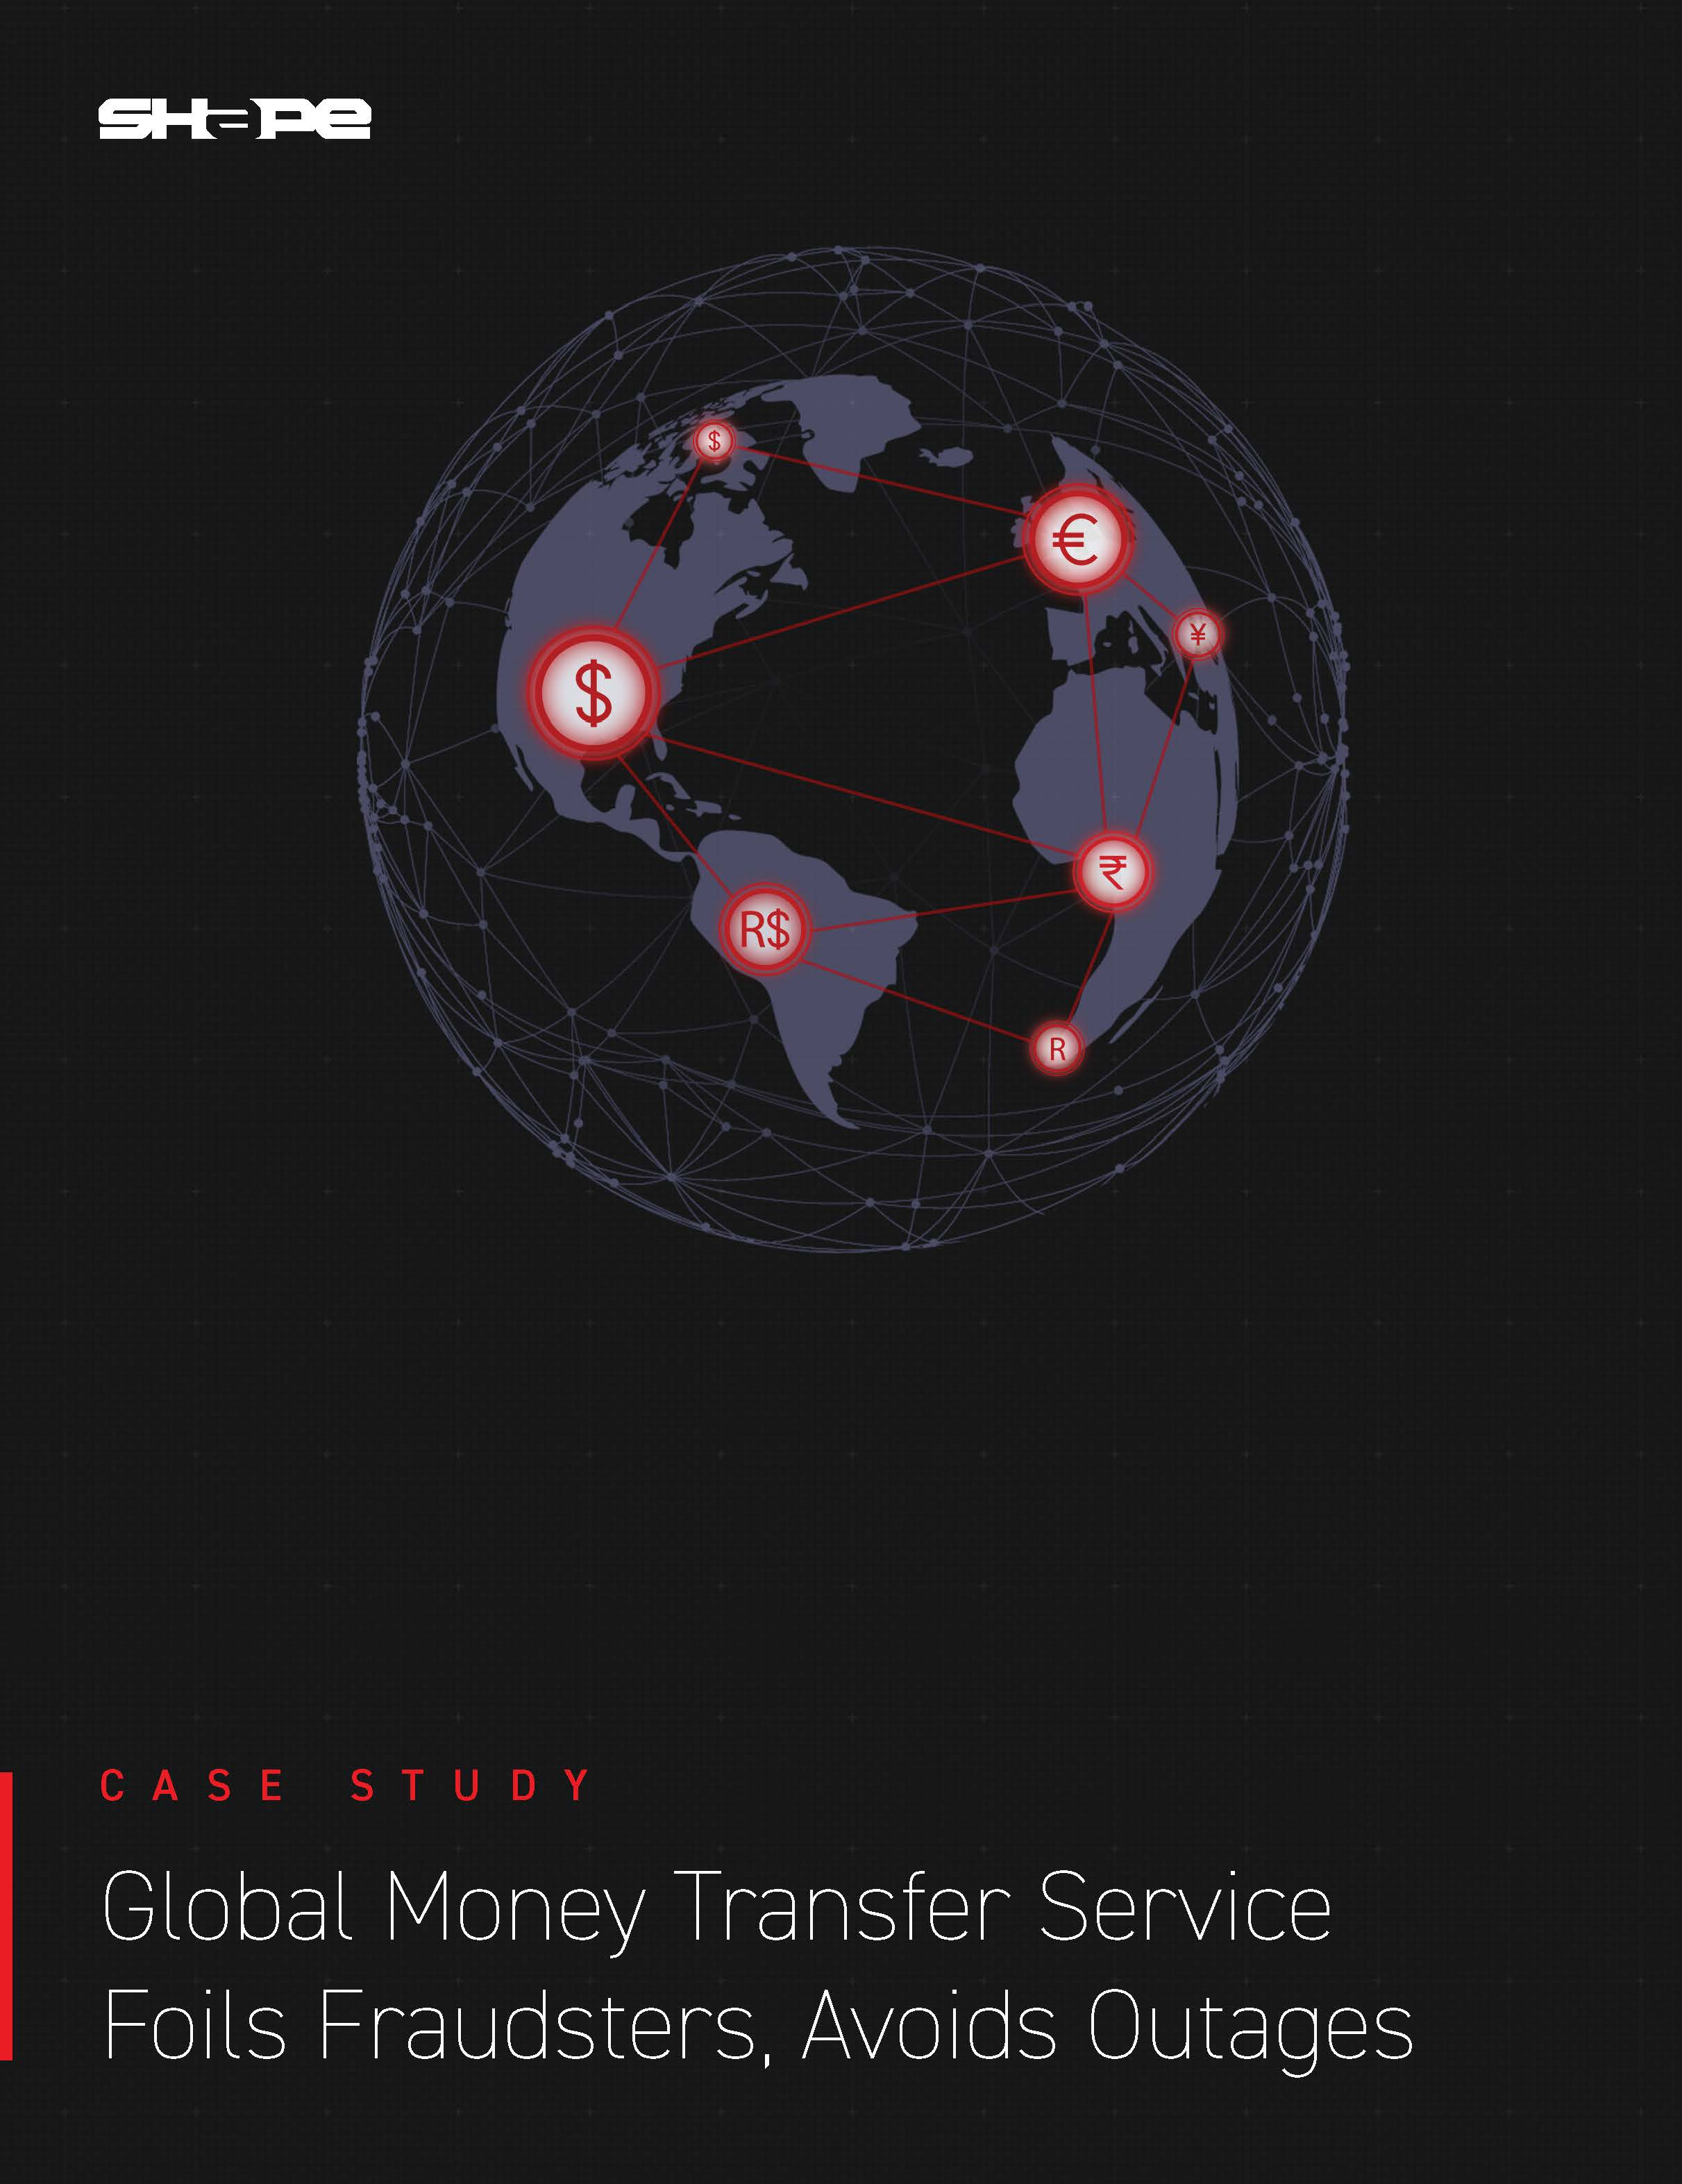 Global Money Transfer Service Foils Fraudsters, Avoids Outages